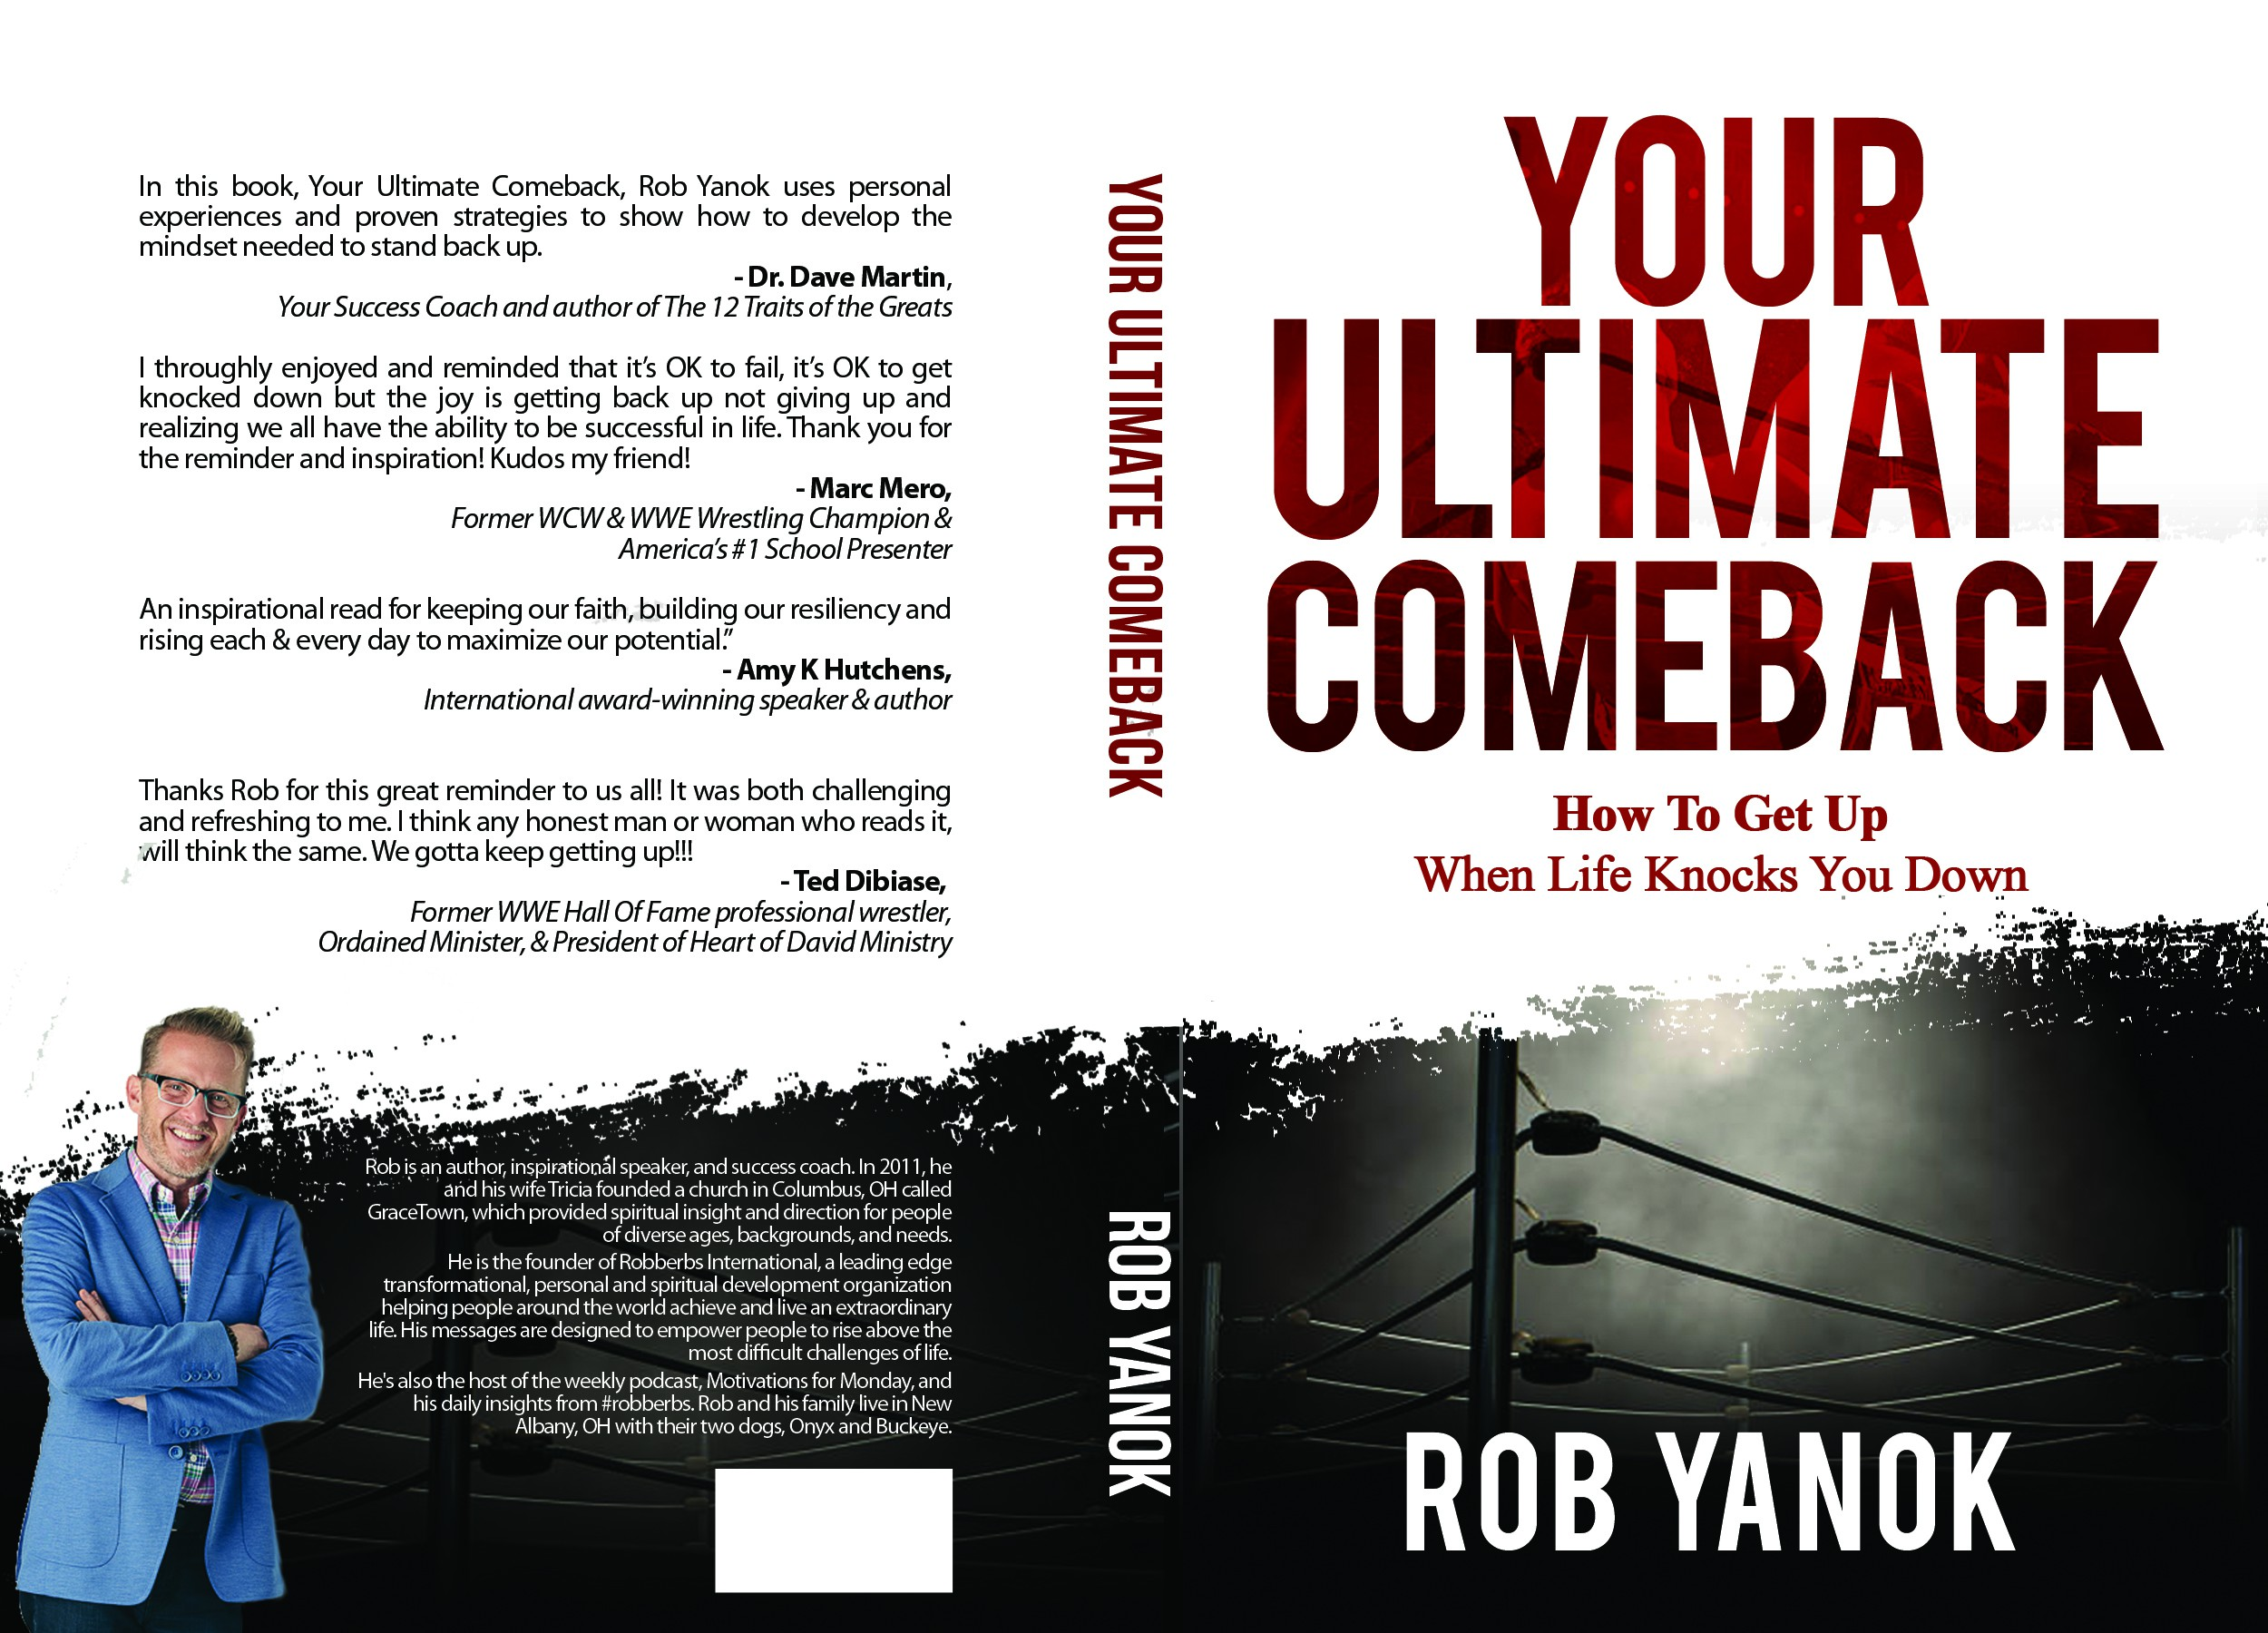 Design a book cover for a best selling book endorsed by many athletes and celebrities